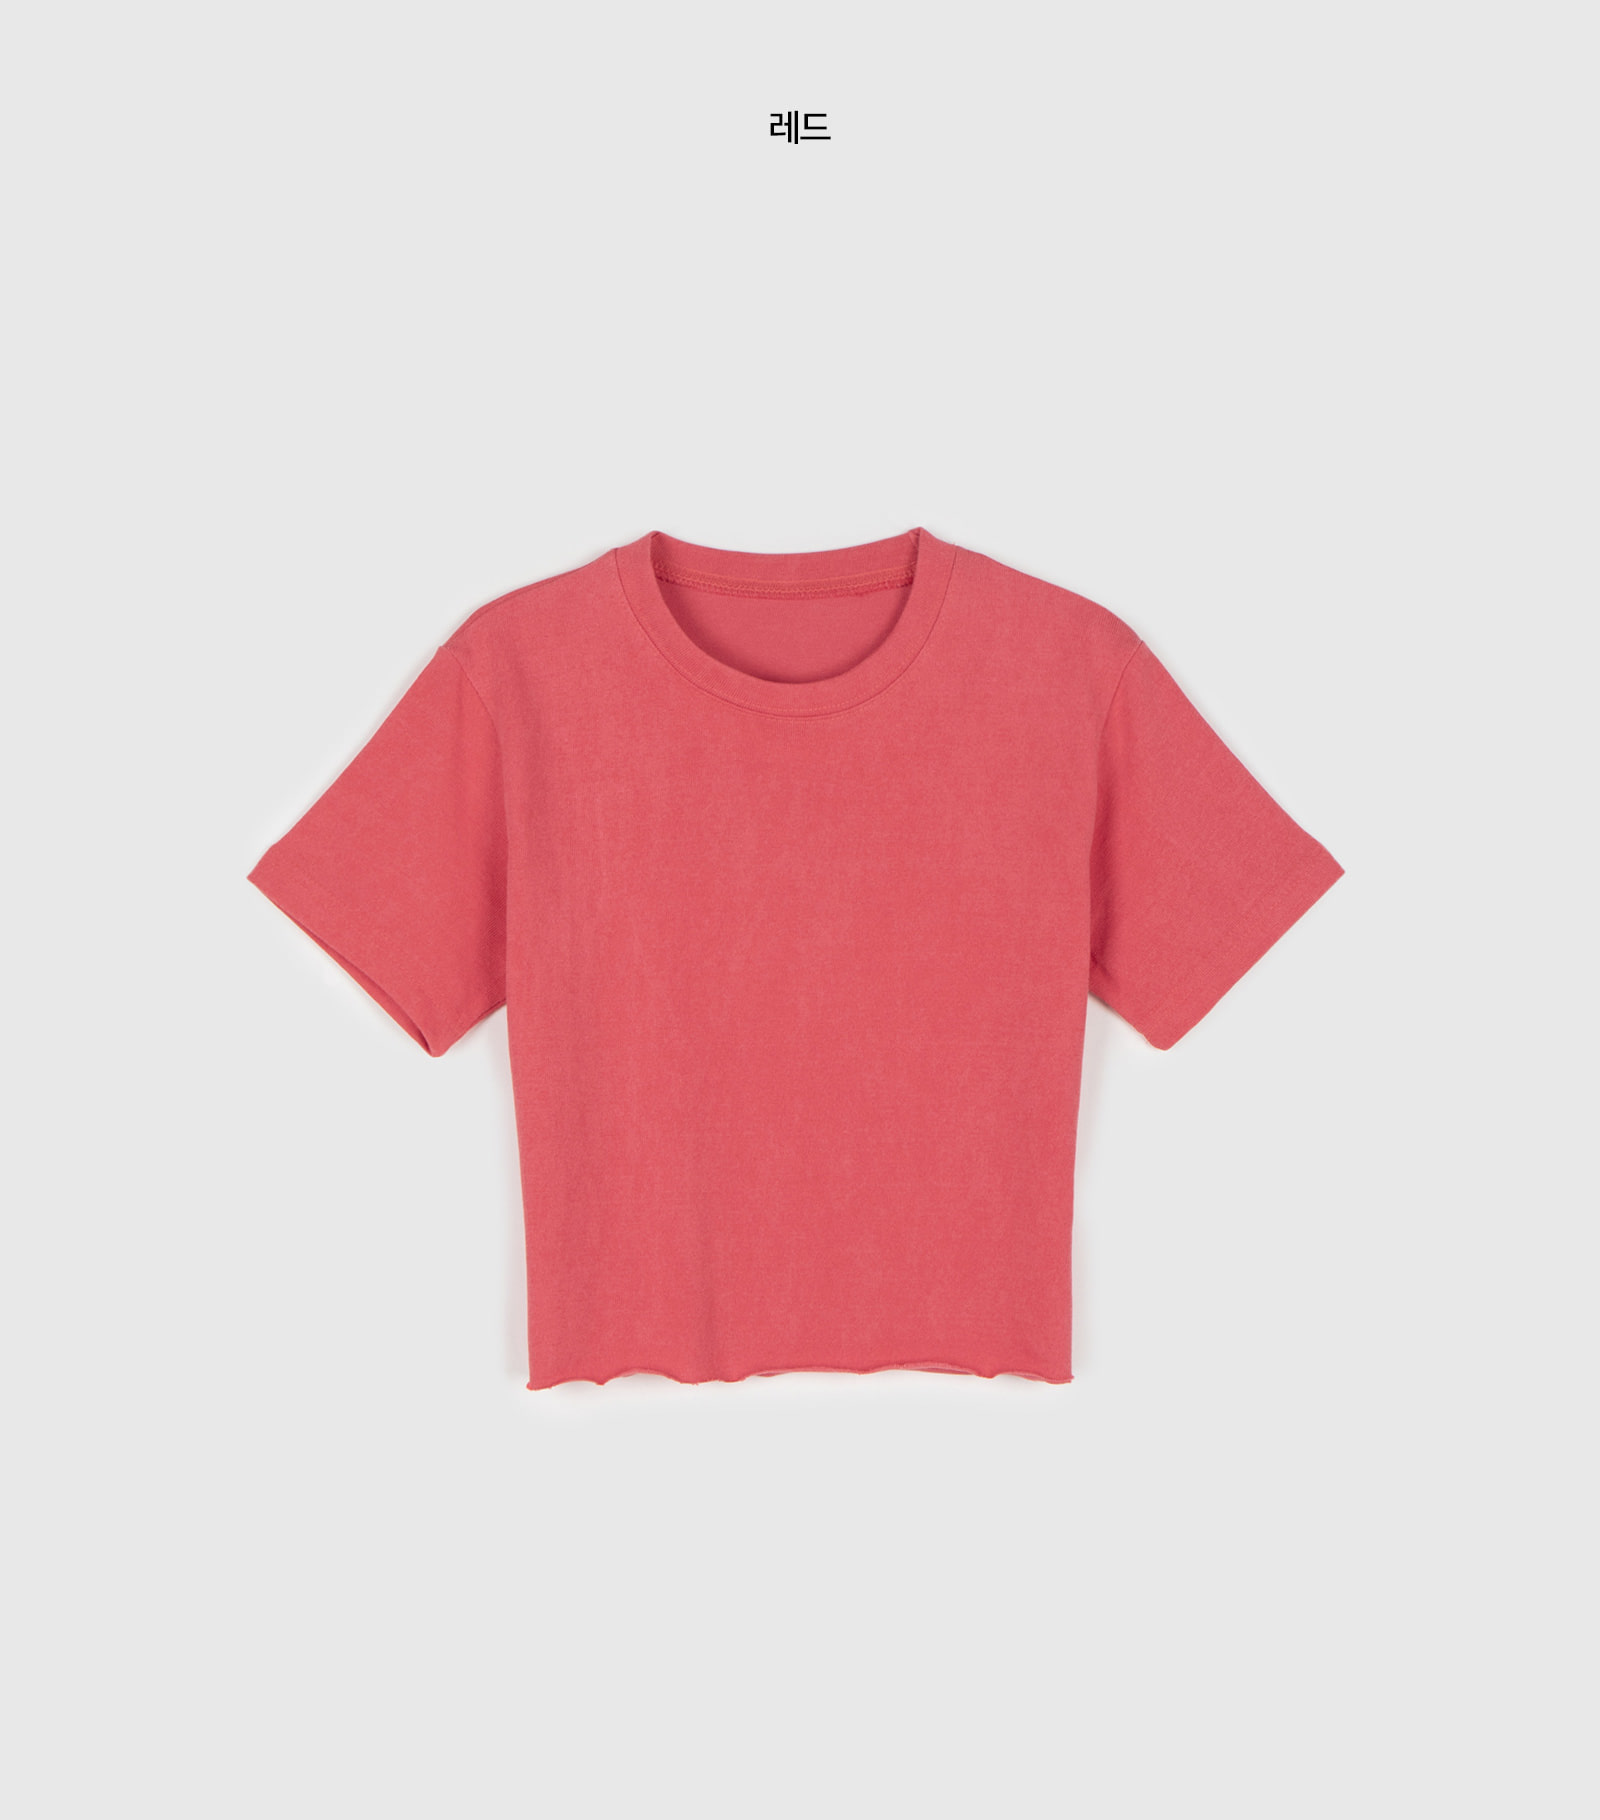 Another printed cropped half-round neck T-shirt